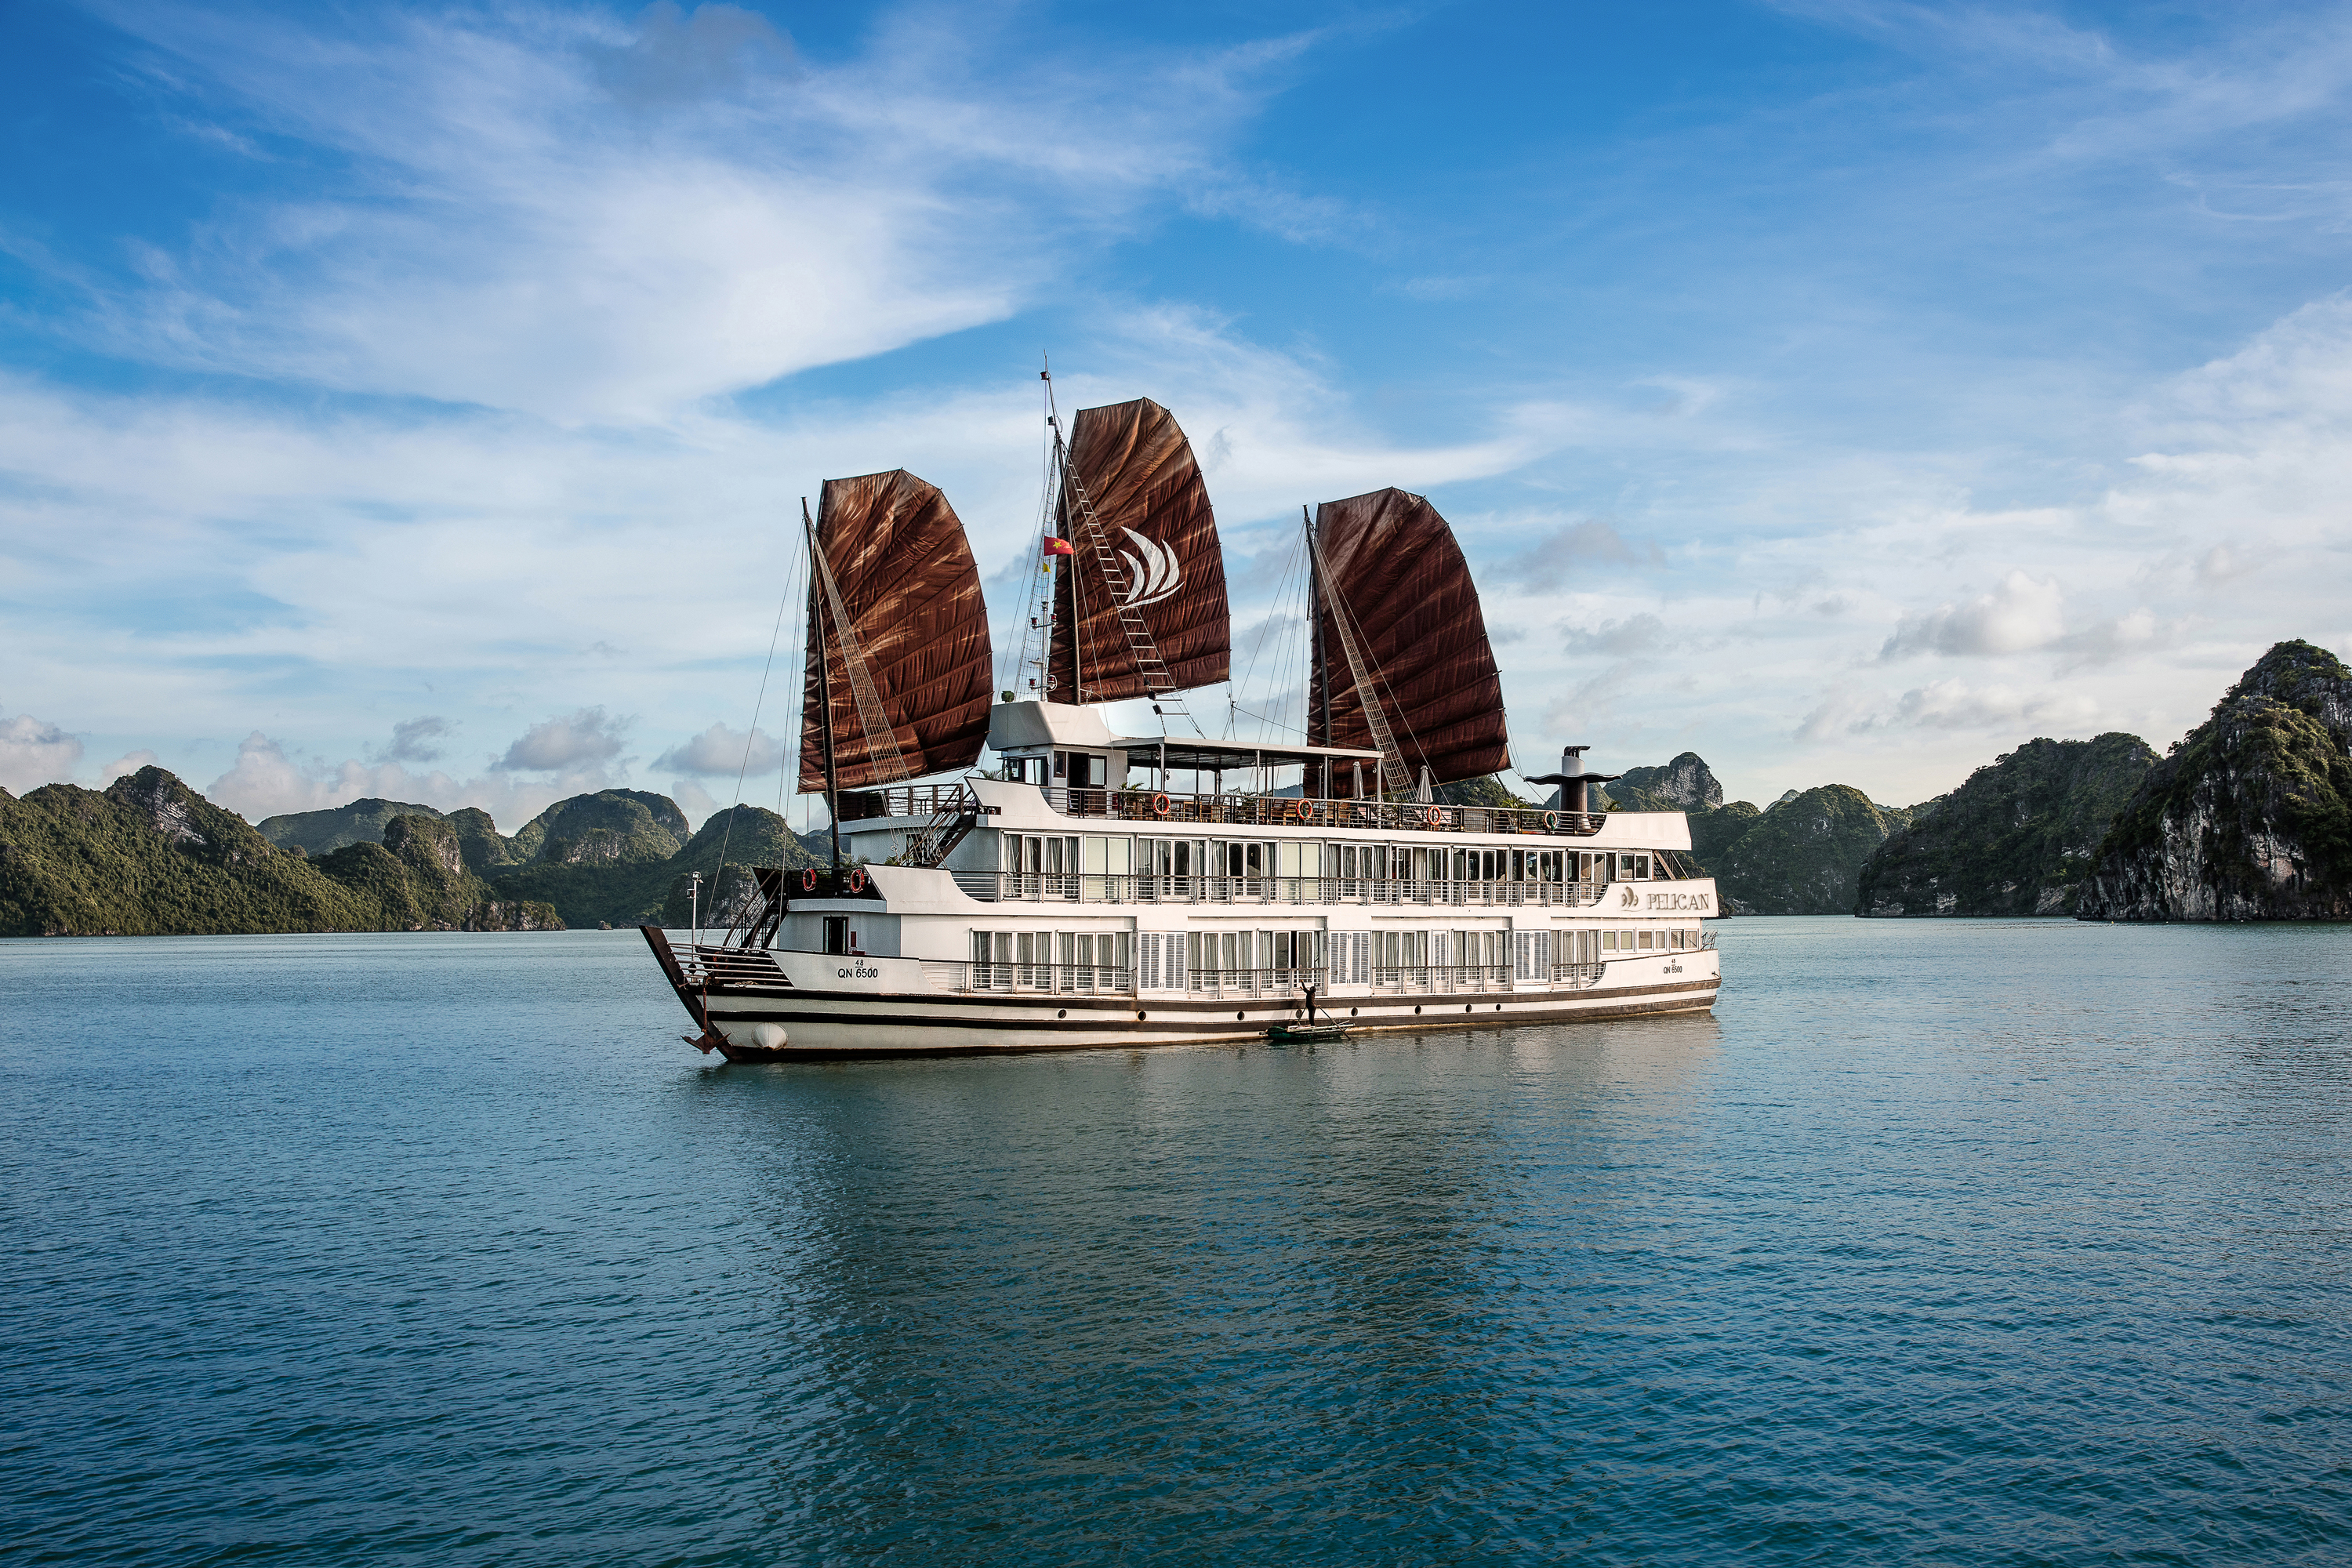 Let's experience a Halong Bay cruise in 2017